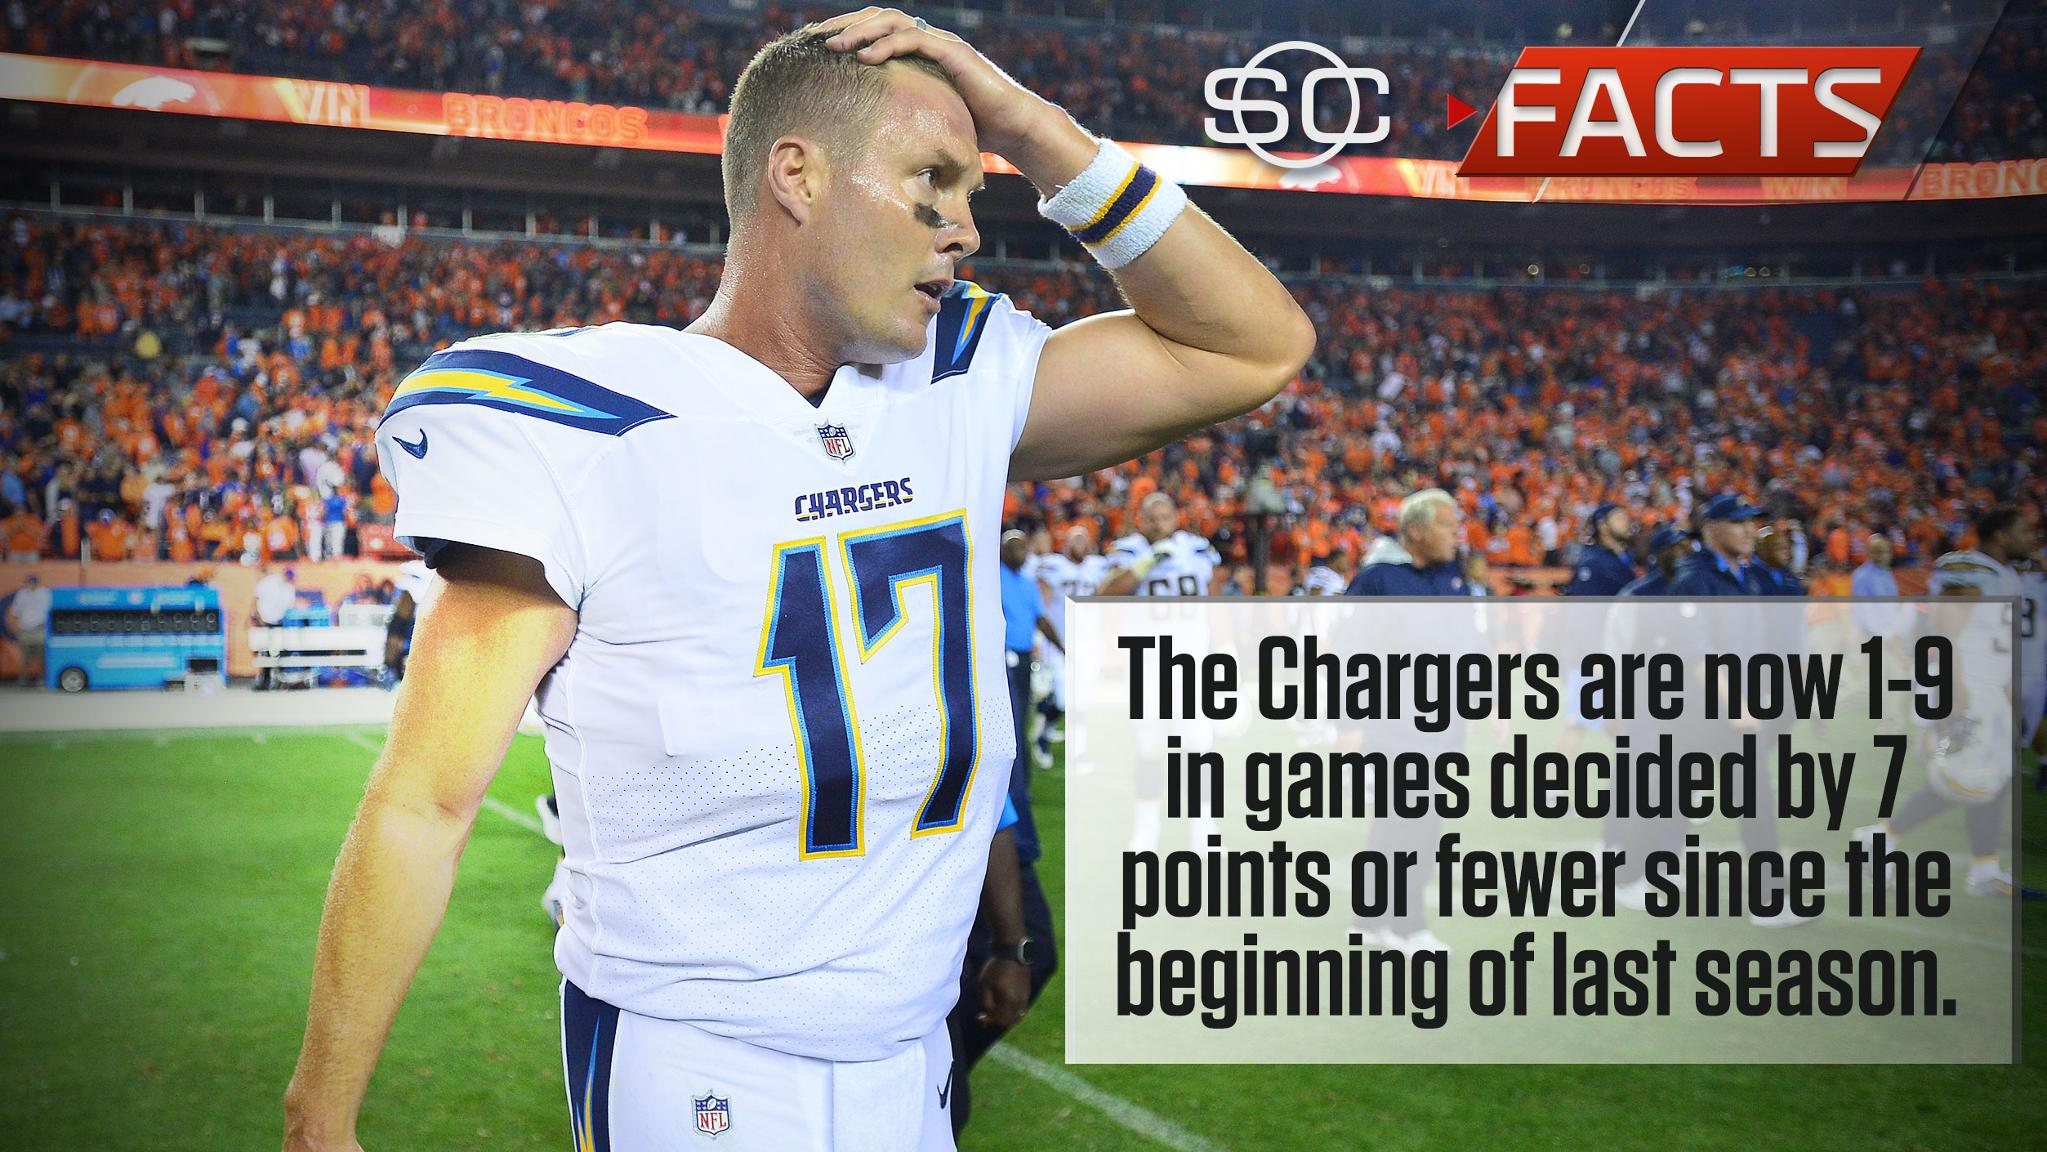 Close games are not the Chargers' specialty. #SCFacts https://t.co/CiD6bBbiUR